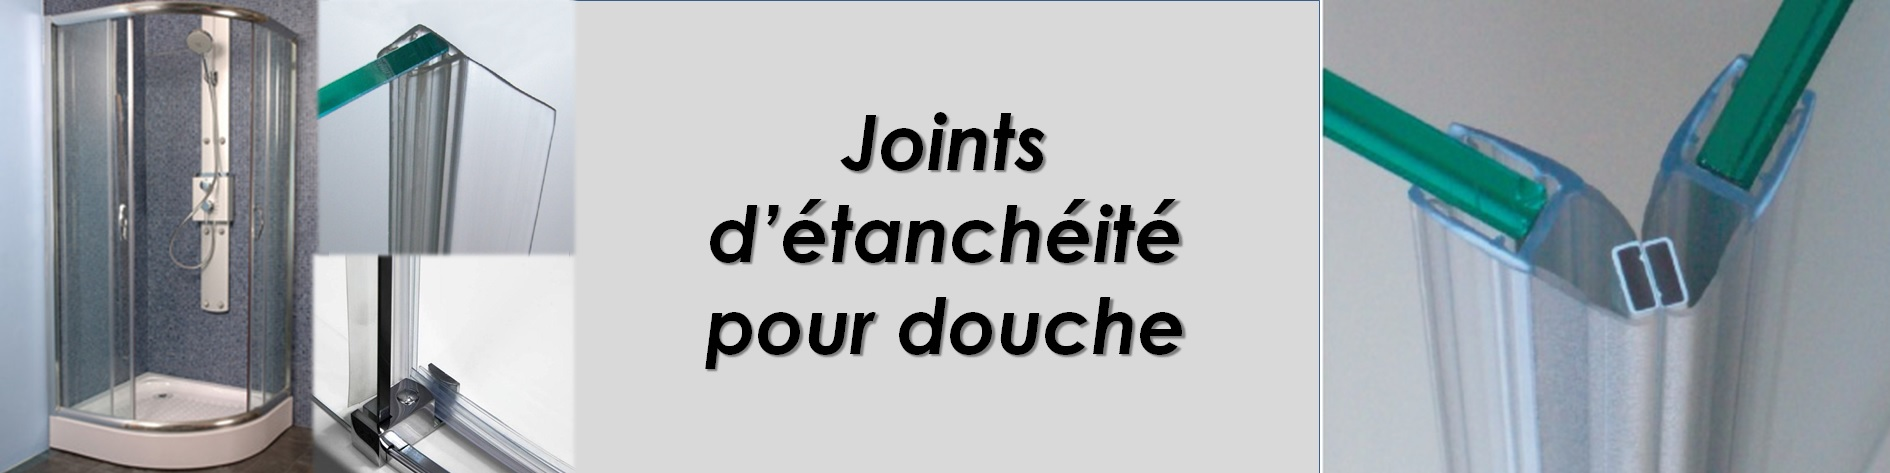 douche joints tanchit u divers with joint etanche salle de. Black Bedroom Furniture Sets. Home Design Ideas